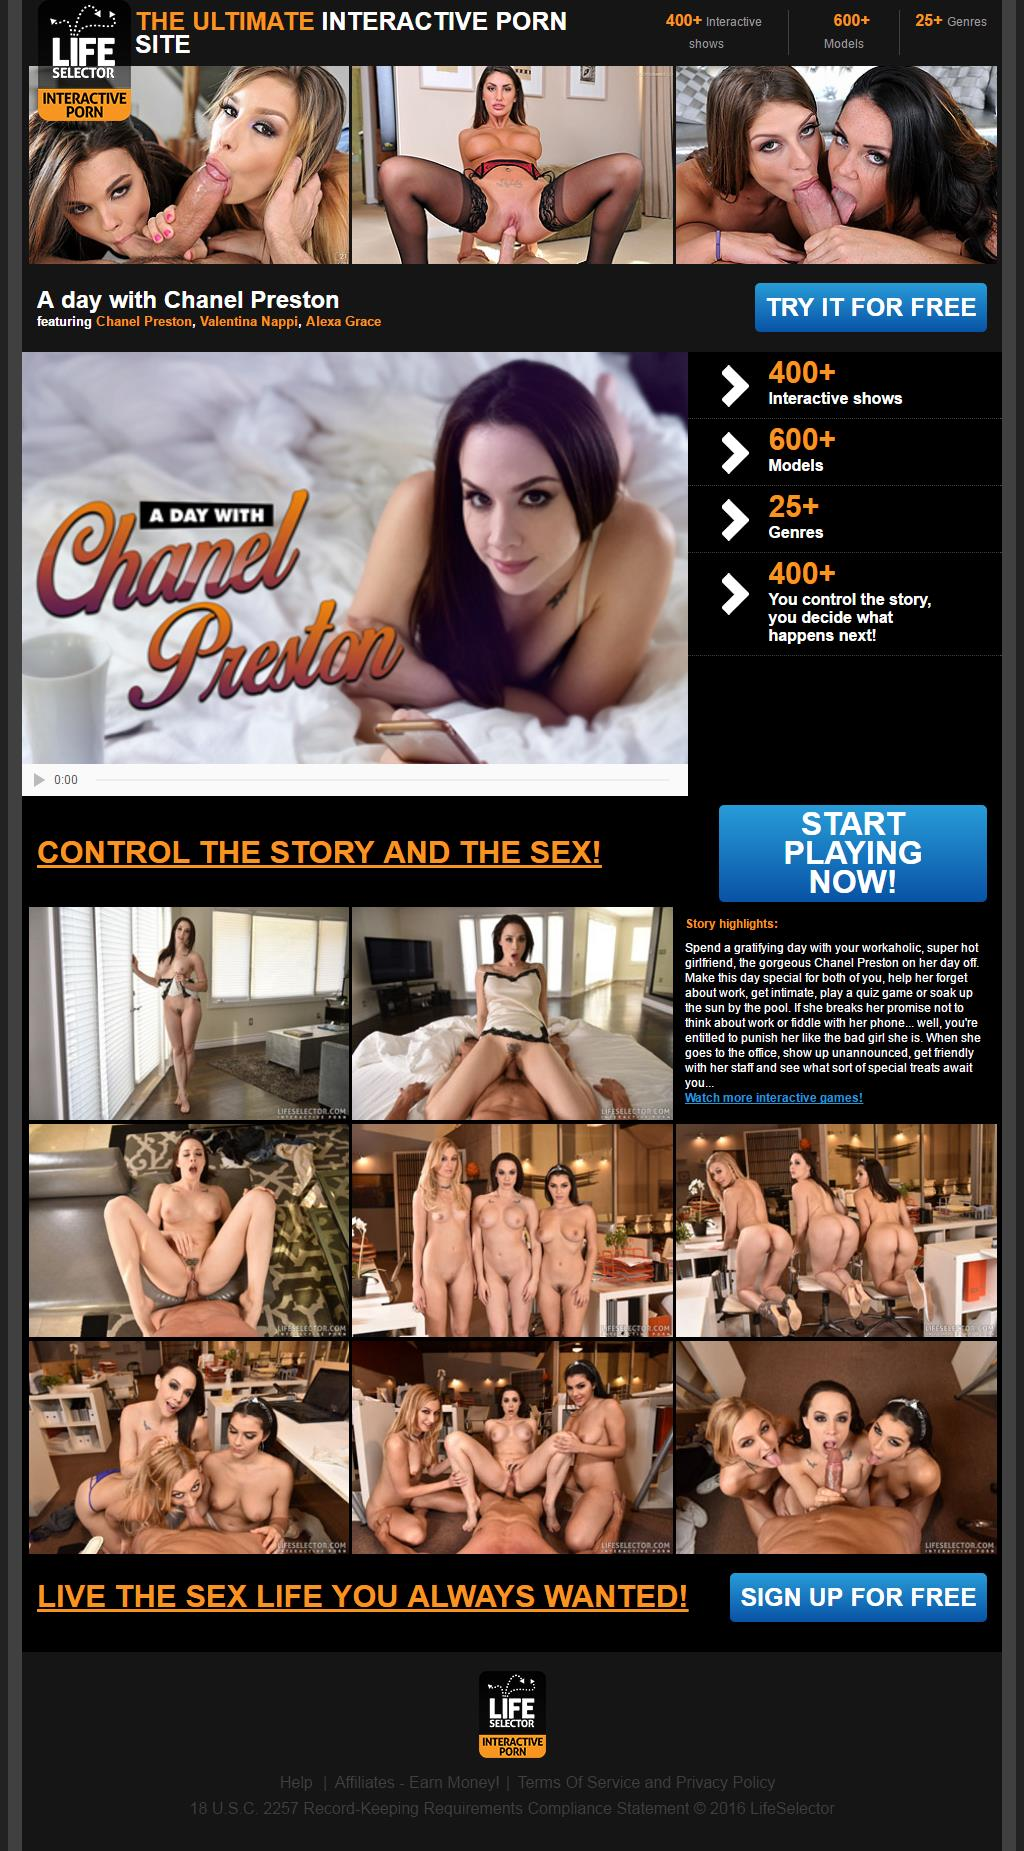 A day with Chanel Preston: Spend a gratifying day with your workaholic, super hot girlfriend, the gorgeous Chanel Preston on her day off. Make this day special for both of you, help her forget about work, get intimate, play a quiz game or soak up the sun by the pool. If she breaks her promise not to think about work or fiddle with her phone... well, you're entitled to punish her like the bad girl she is. When she goes to the office, show up unannounced, get friendly with her staff and see what sort of special treats await you...